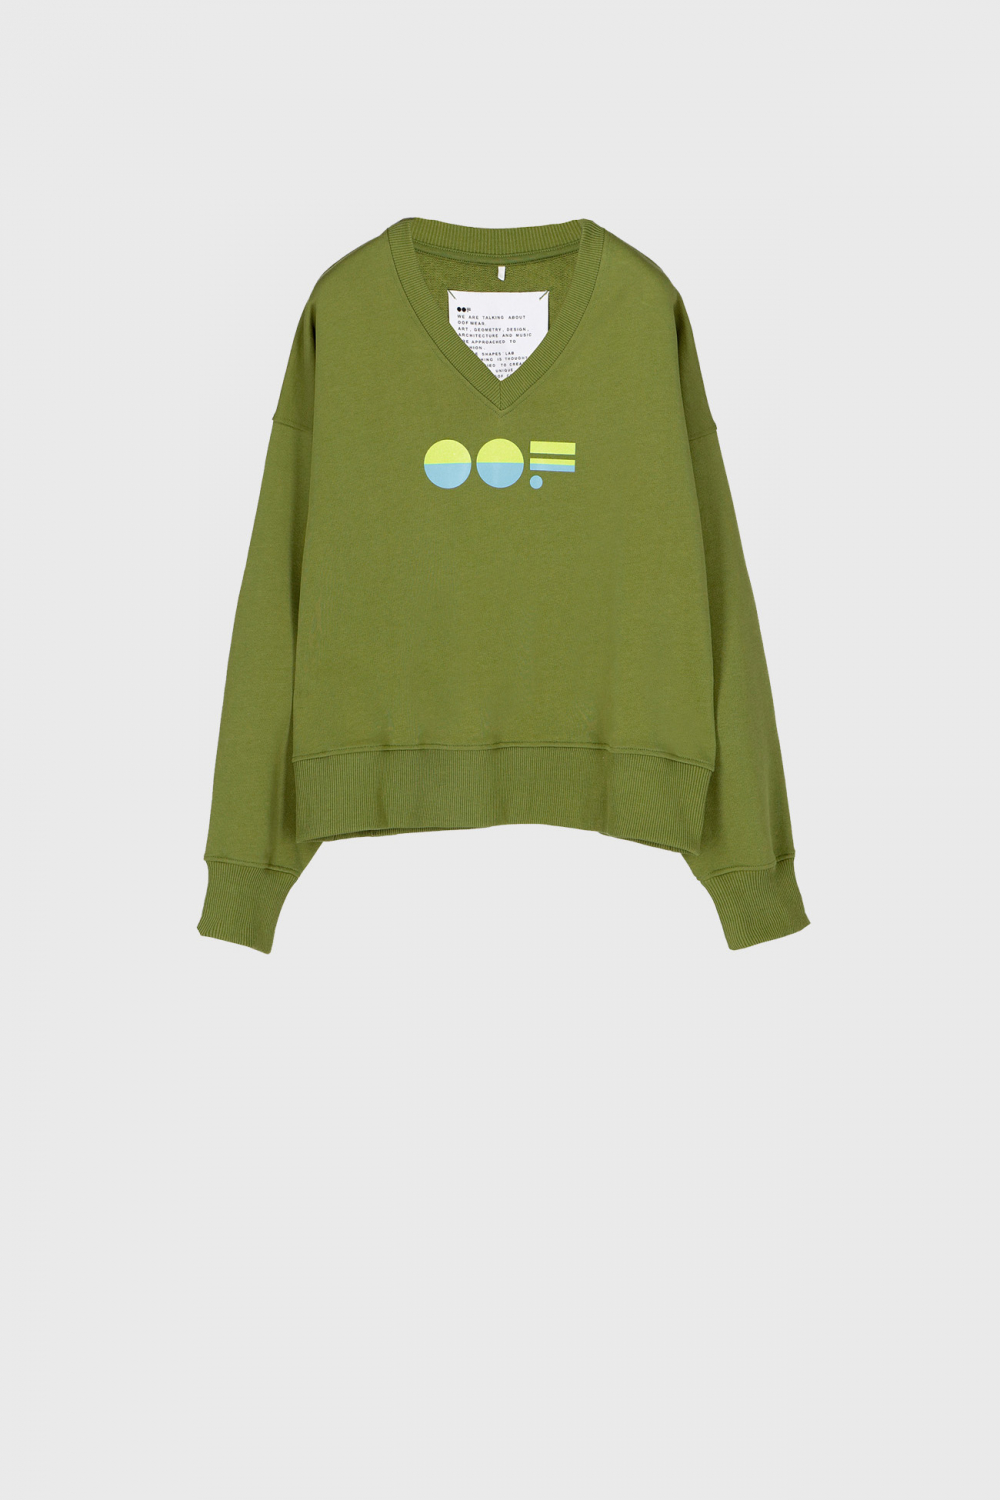 Women's green cotton sweatshirt  with V neck